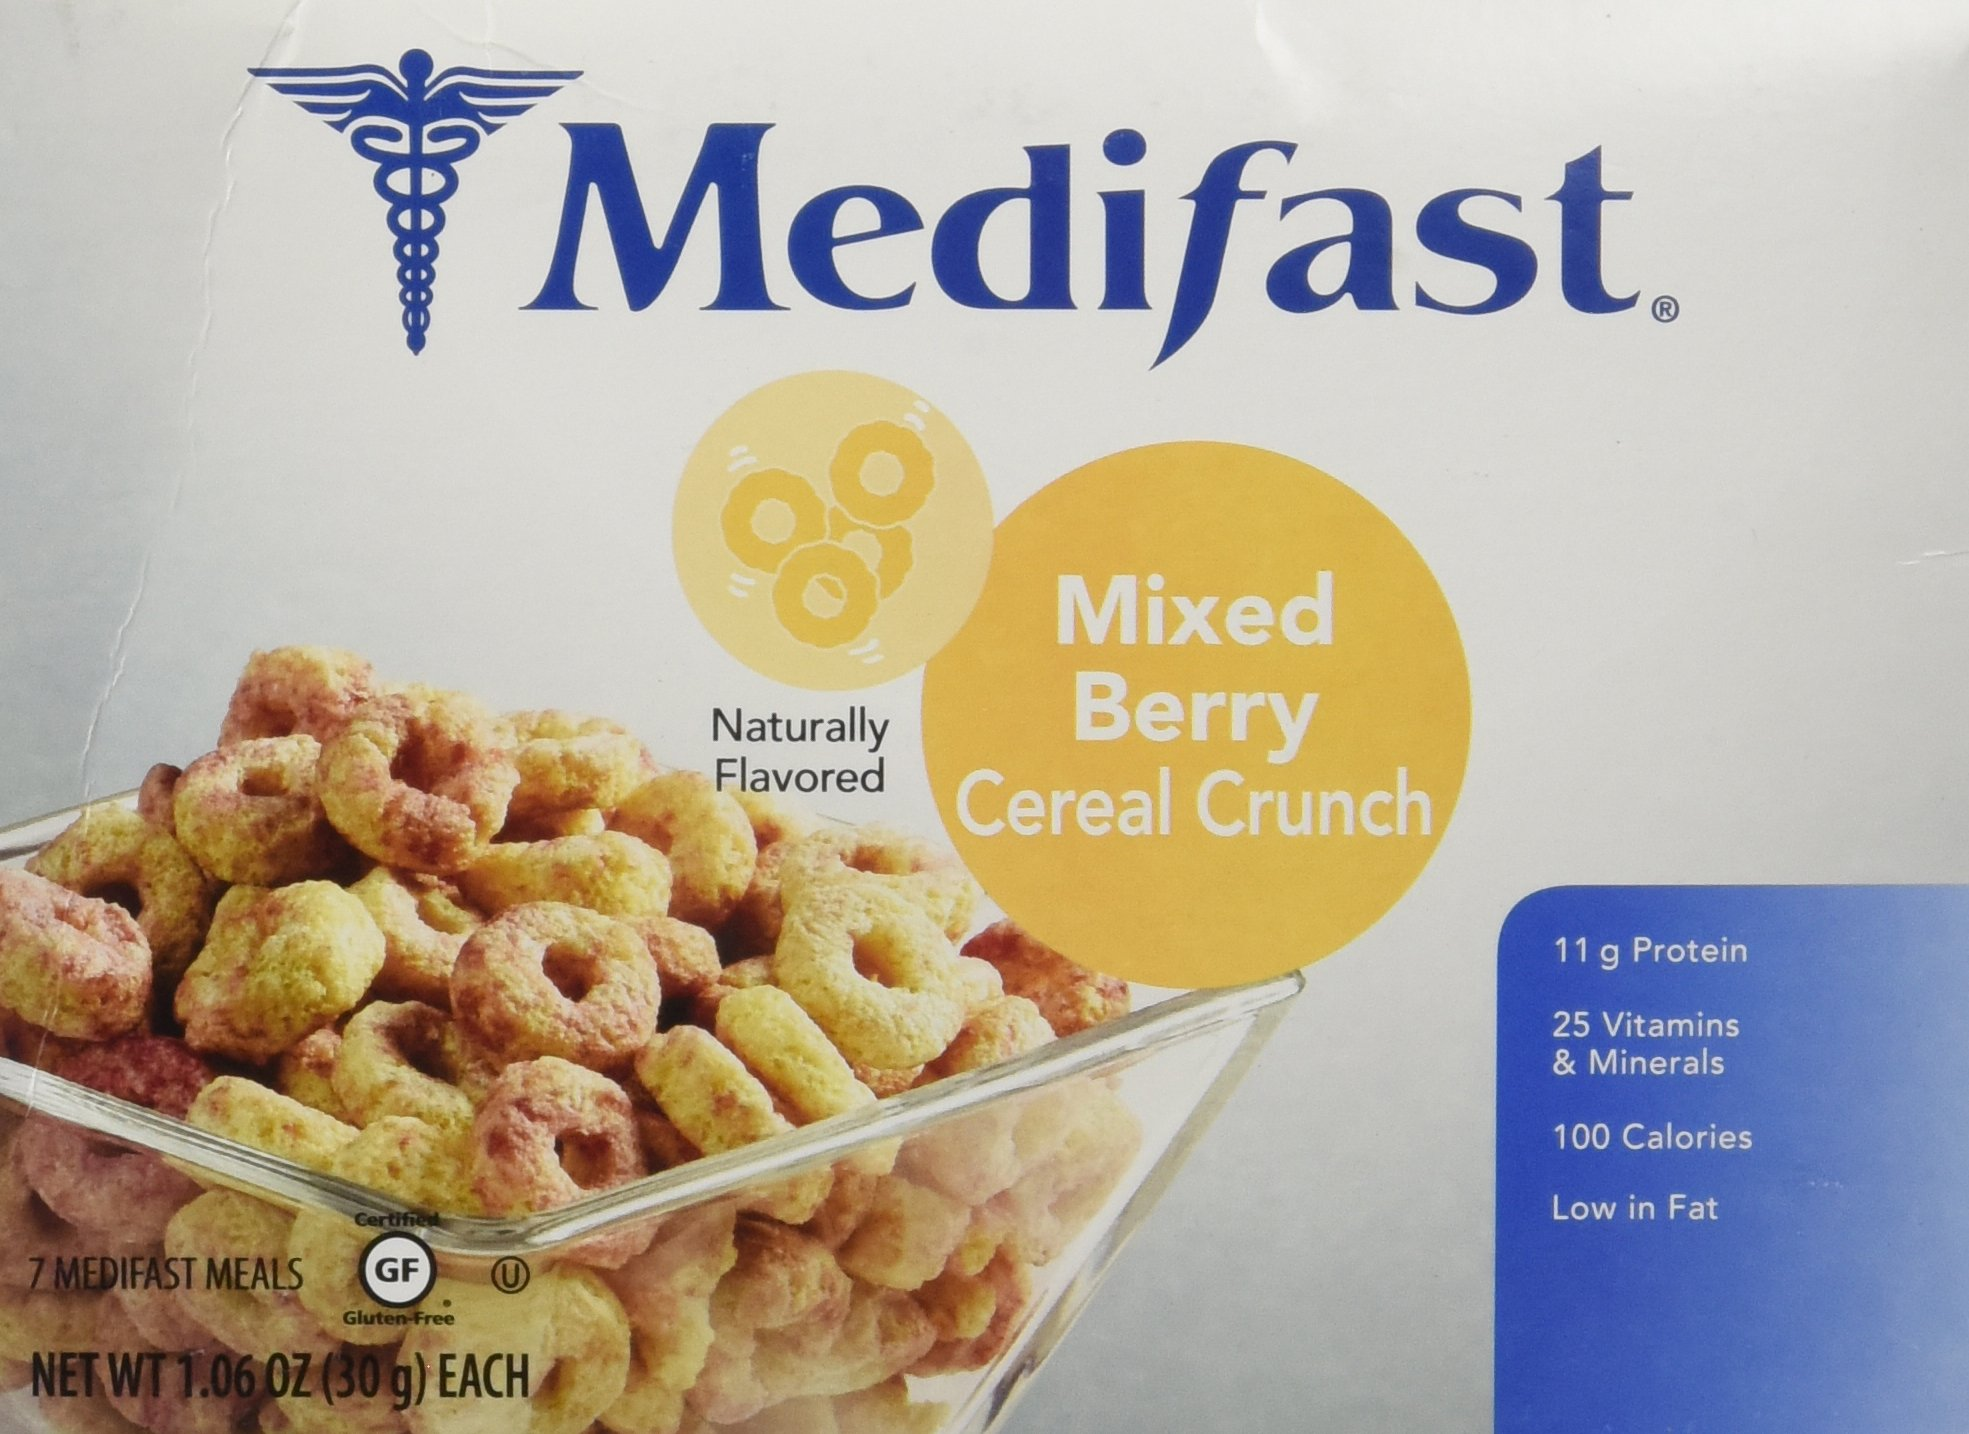 Medifast Mixed Berry Cereal Crunch (1 Box/7 Servings)